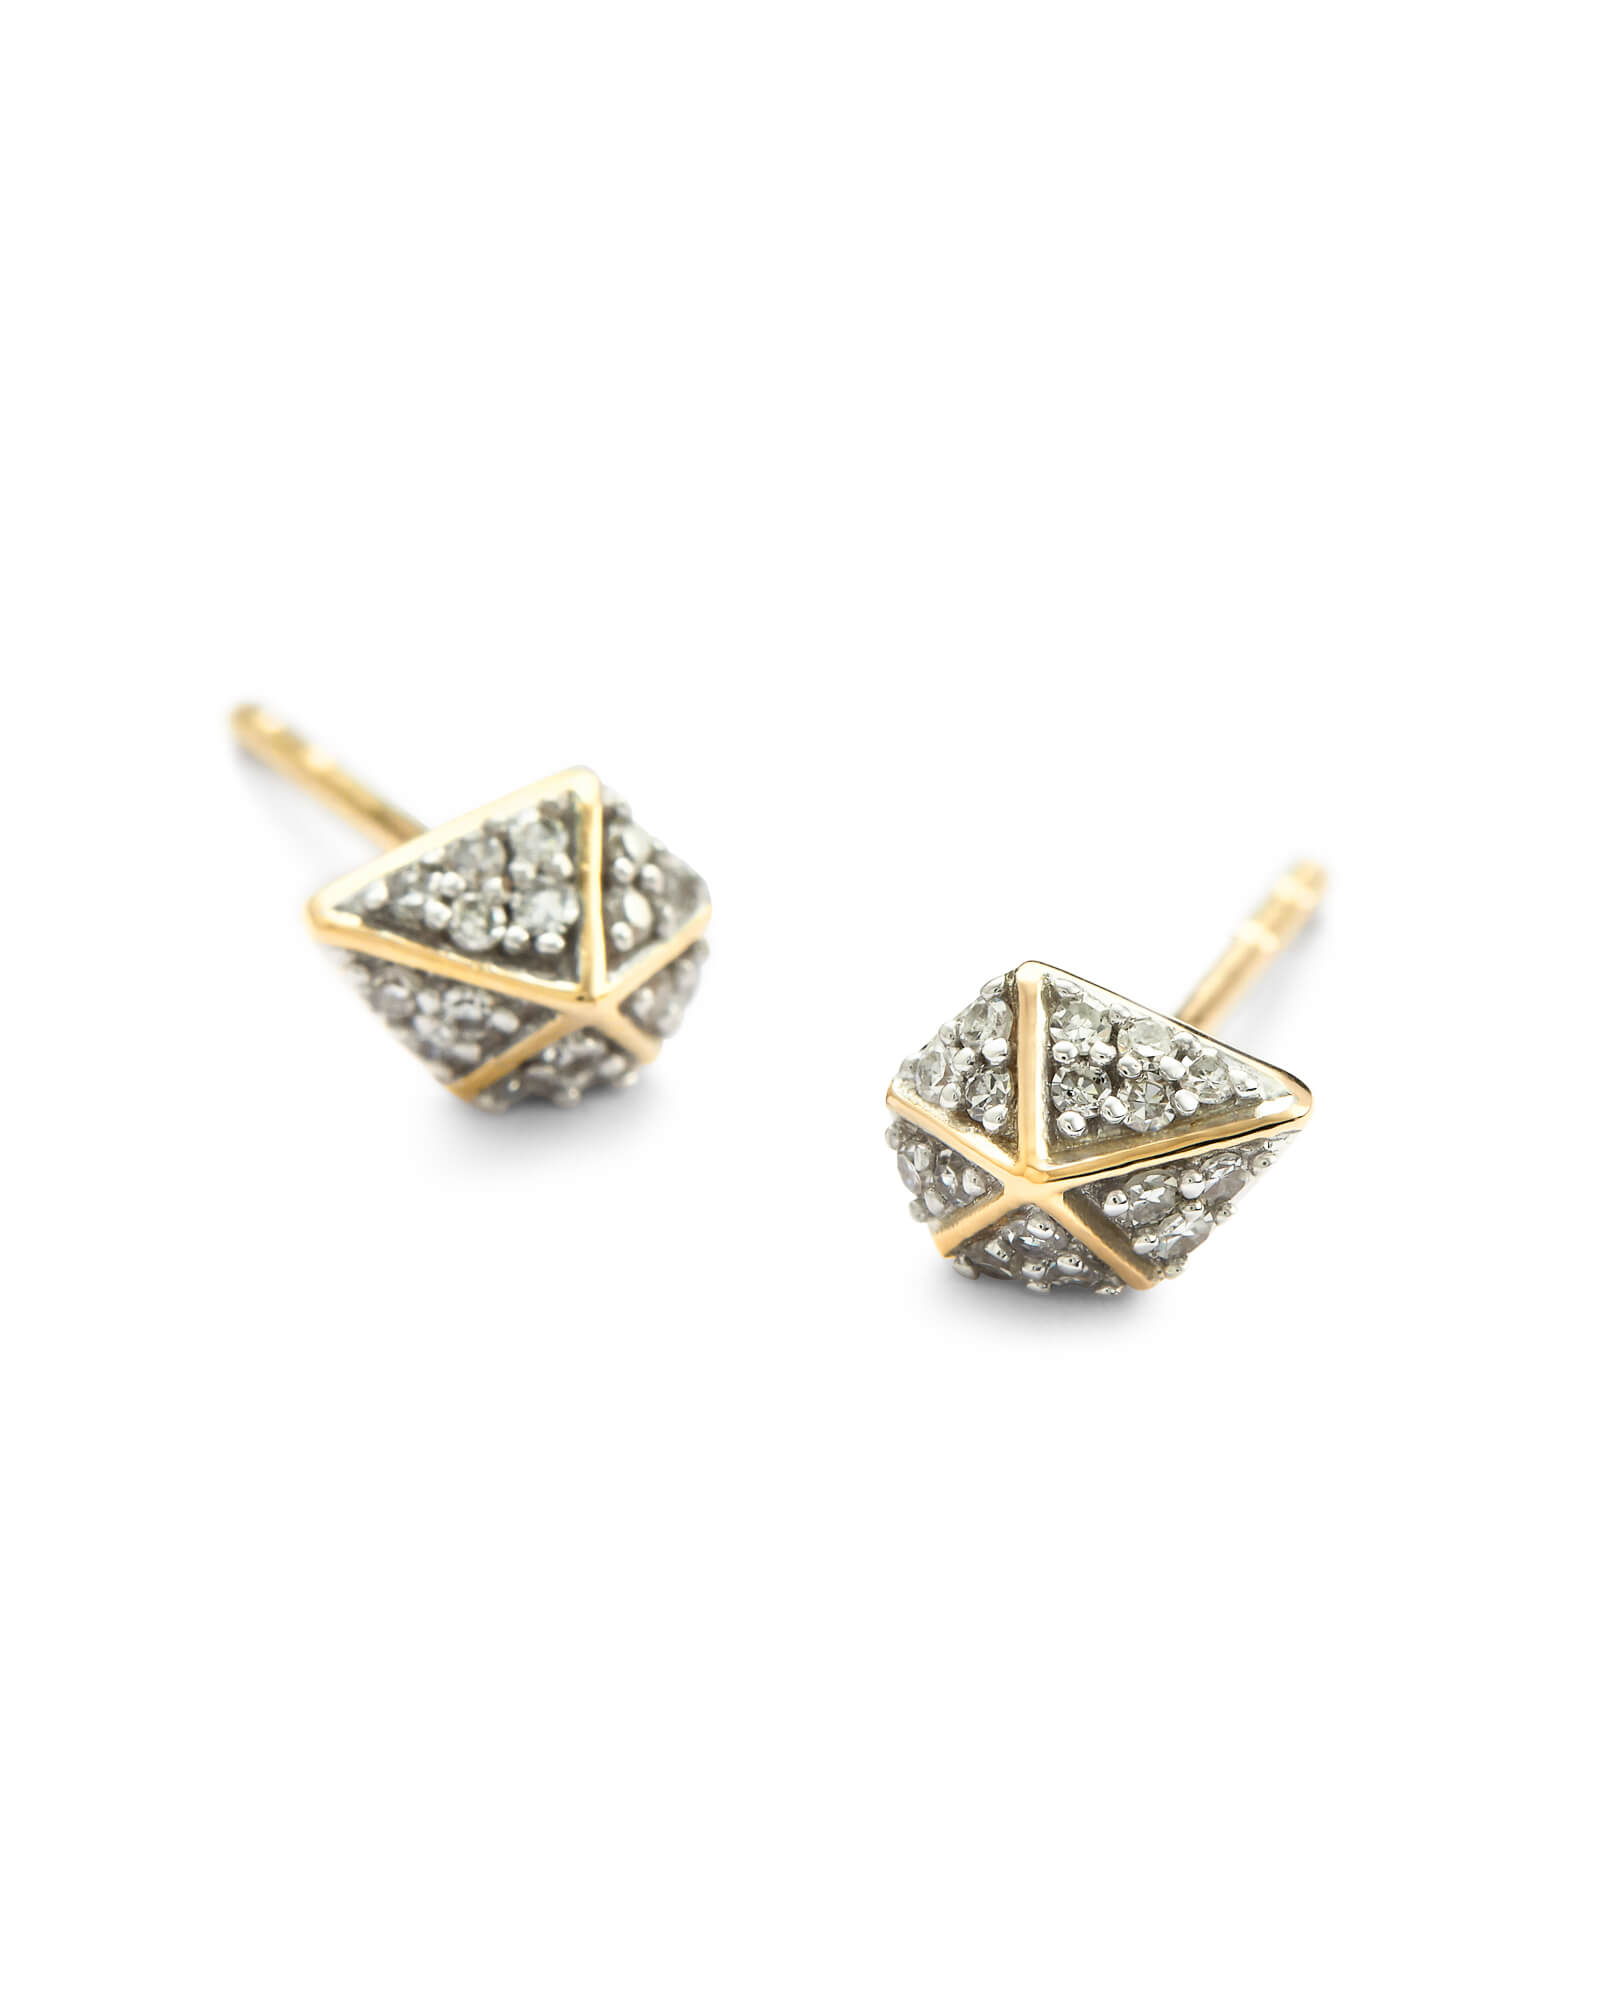 Manet 14k Yellow Gold Stud Earrings in White Diamond